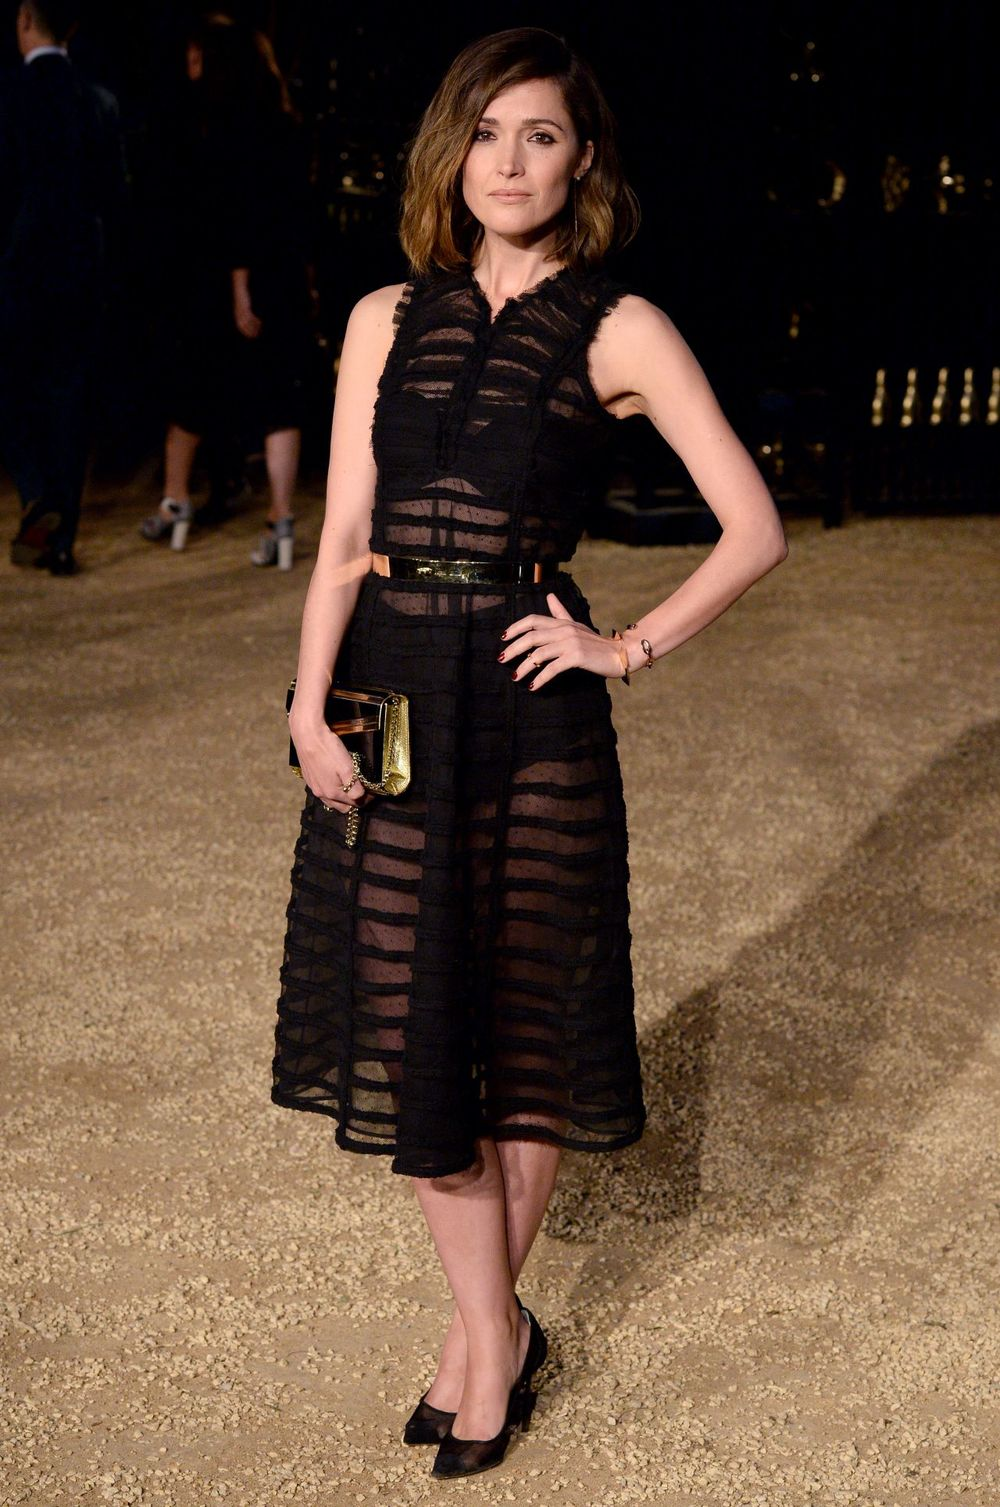 rose-byrne-burberry-s-london-in-los-angeles-party-in-los-angeles-april-2015_10.jpg